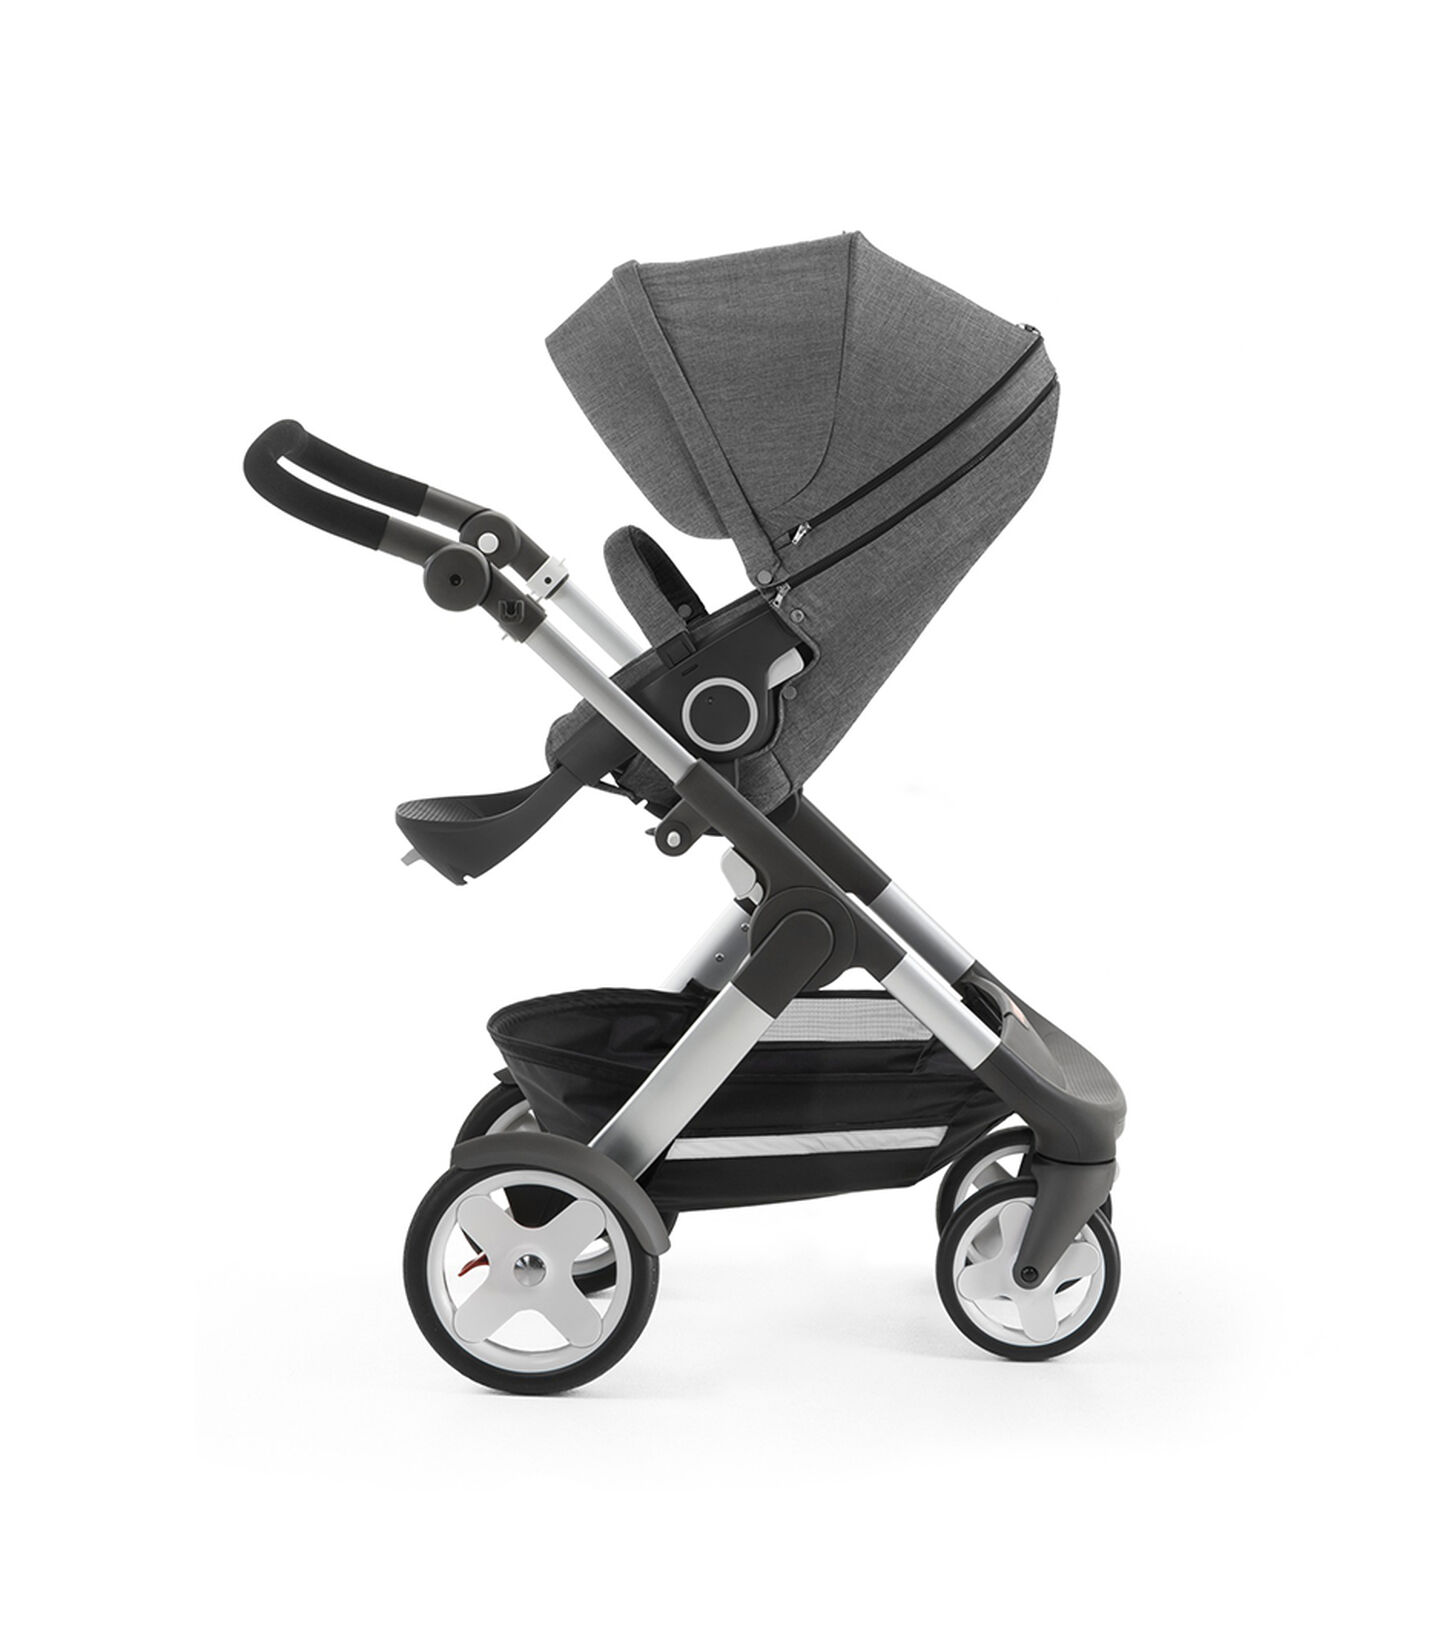 Stokke® Trailz™ with Stokke® Stroller Seat, Black Melange. Classic Wheels. view 2